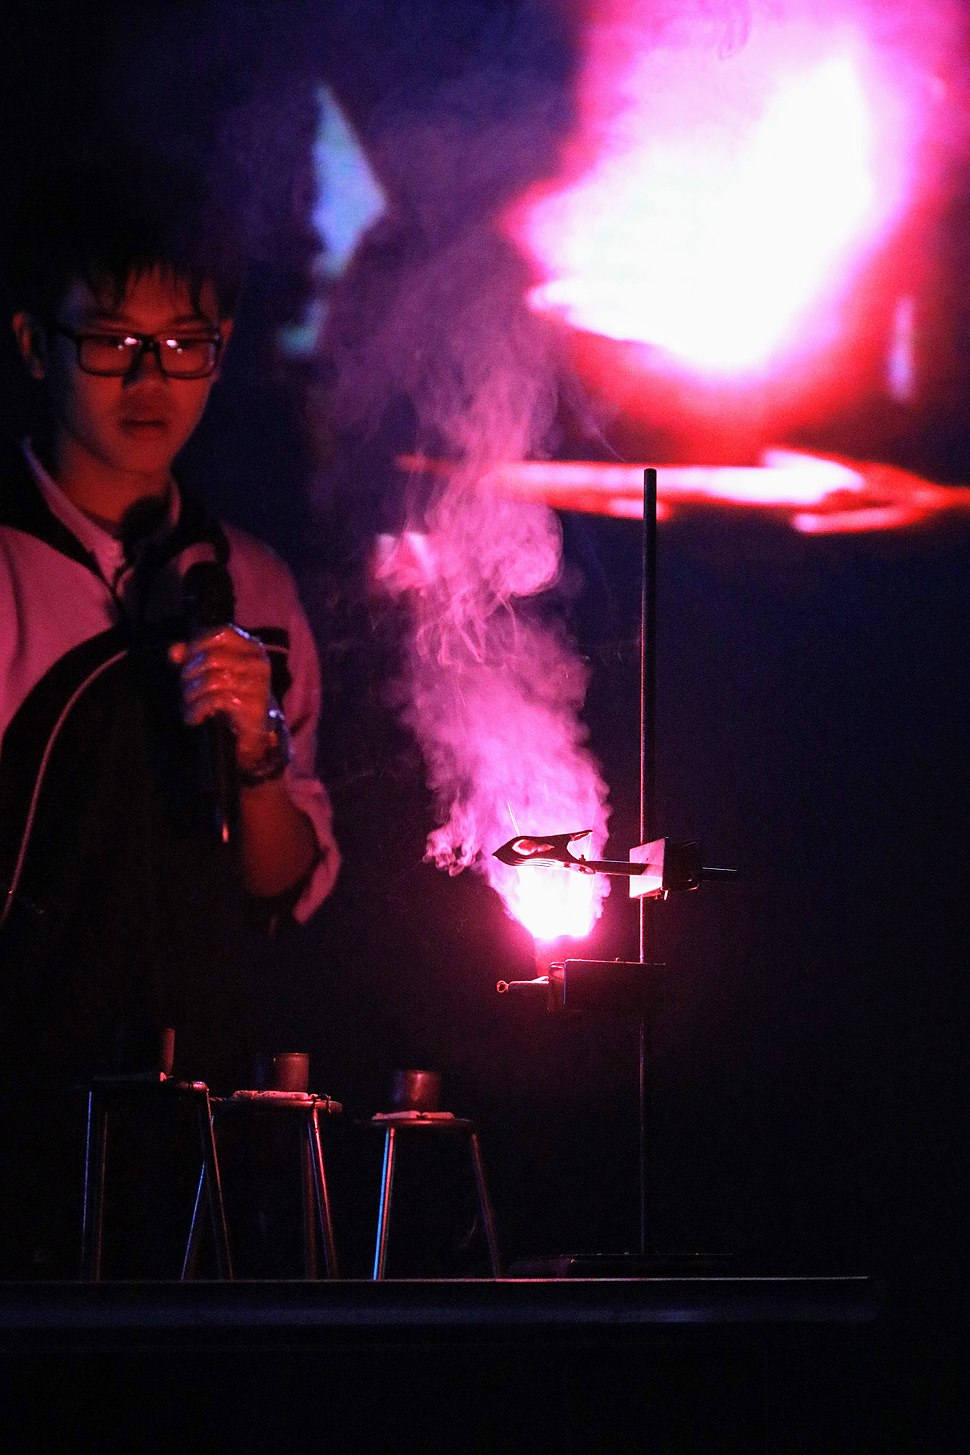 A Student Conducting the Chemical Experiment using Crucible